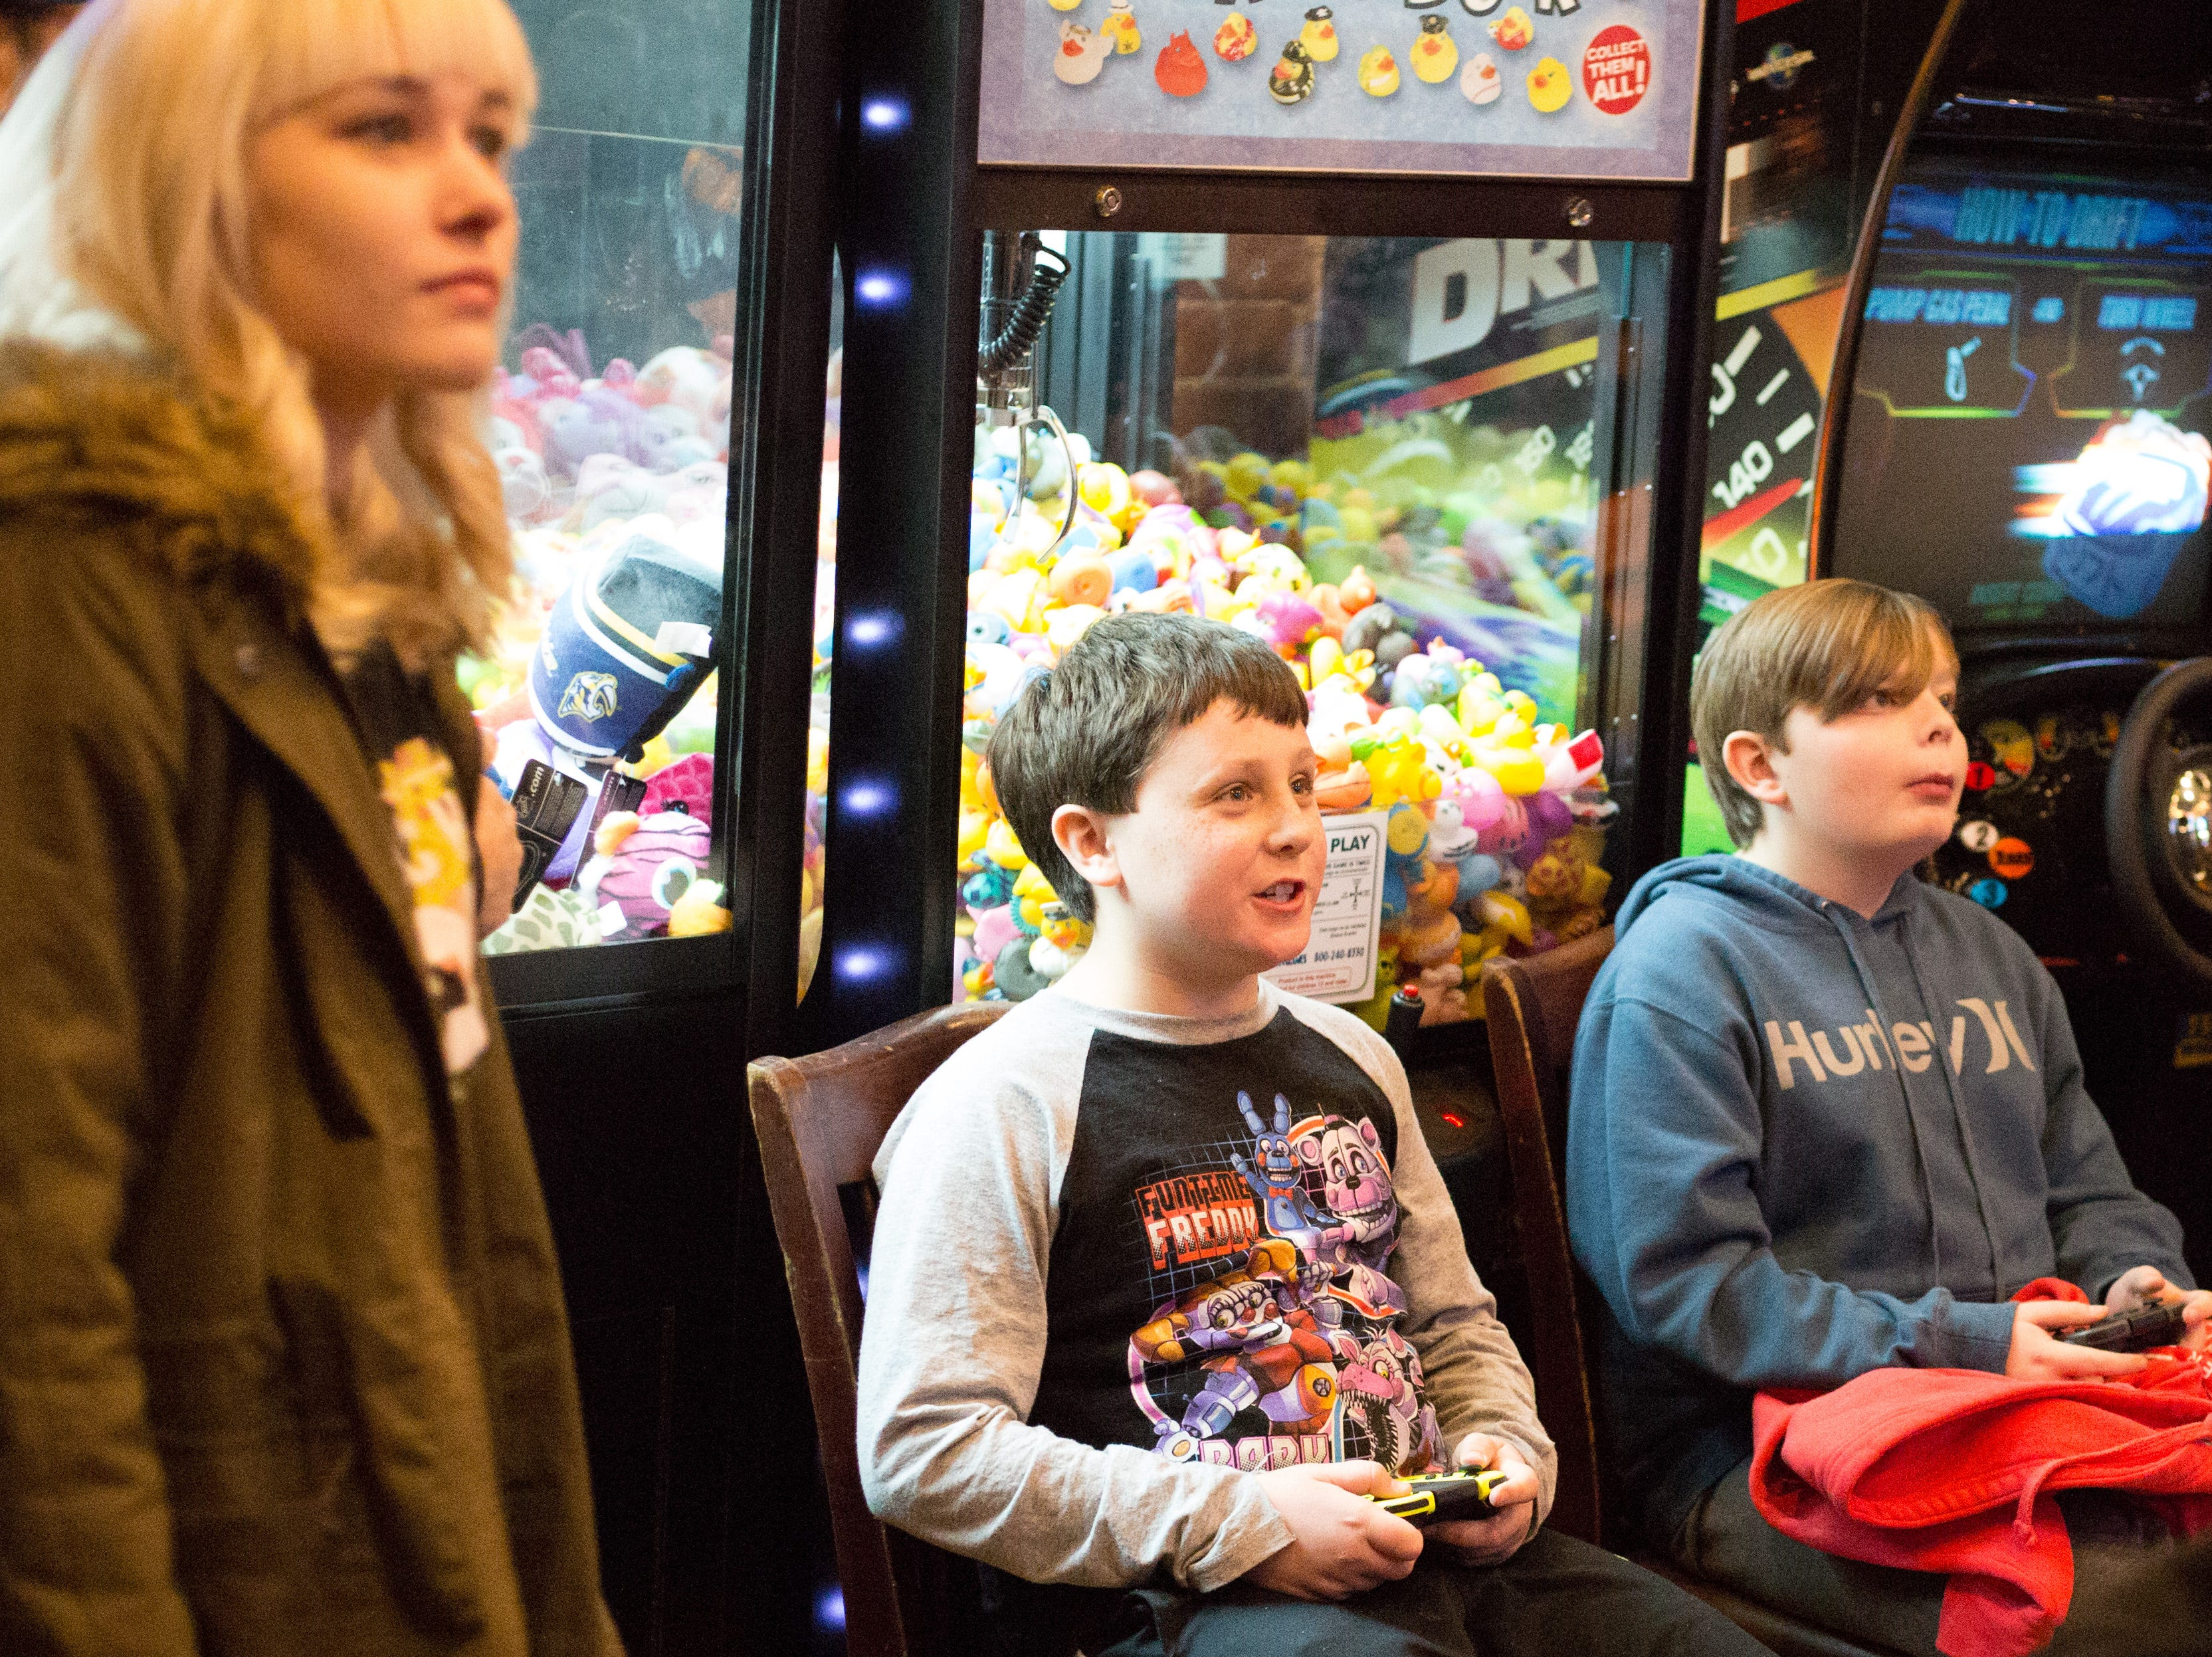 Competitors have fun during a Super Smash Brothers Ultimate Tournament presented by Big Dad Games at Filly's Game and Grill in Gallatin on Monday, Jan 14.